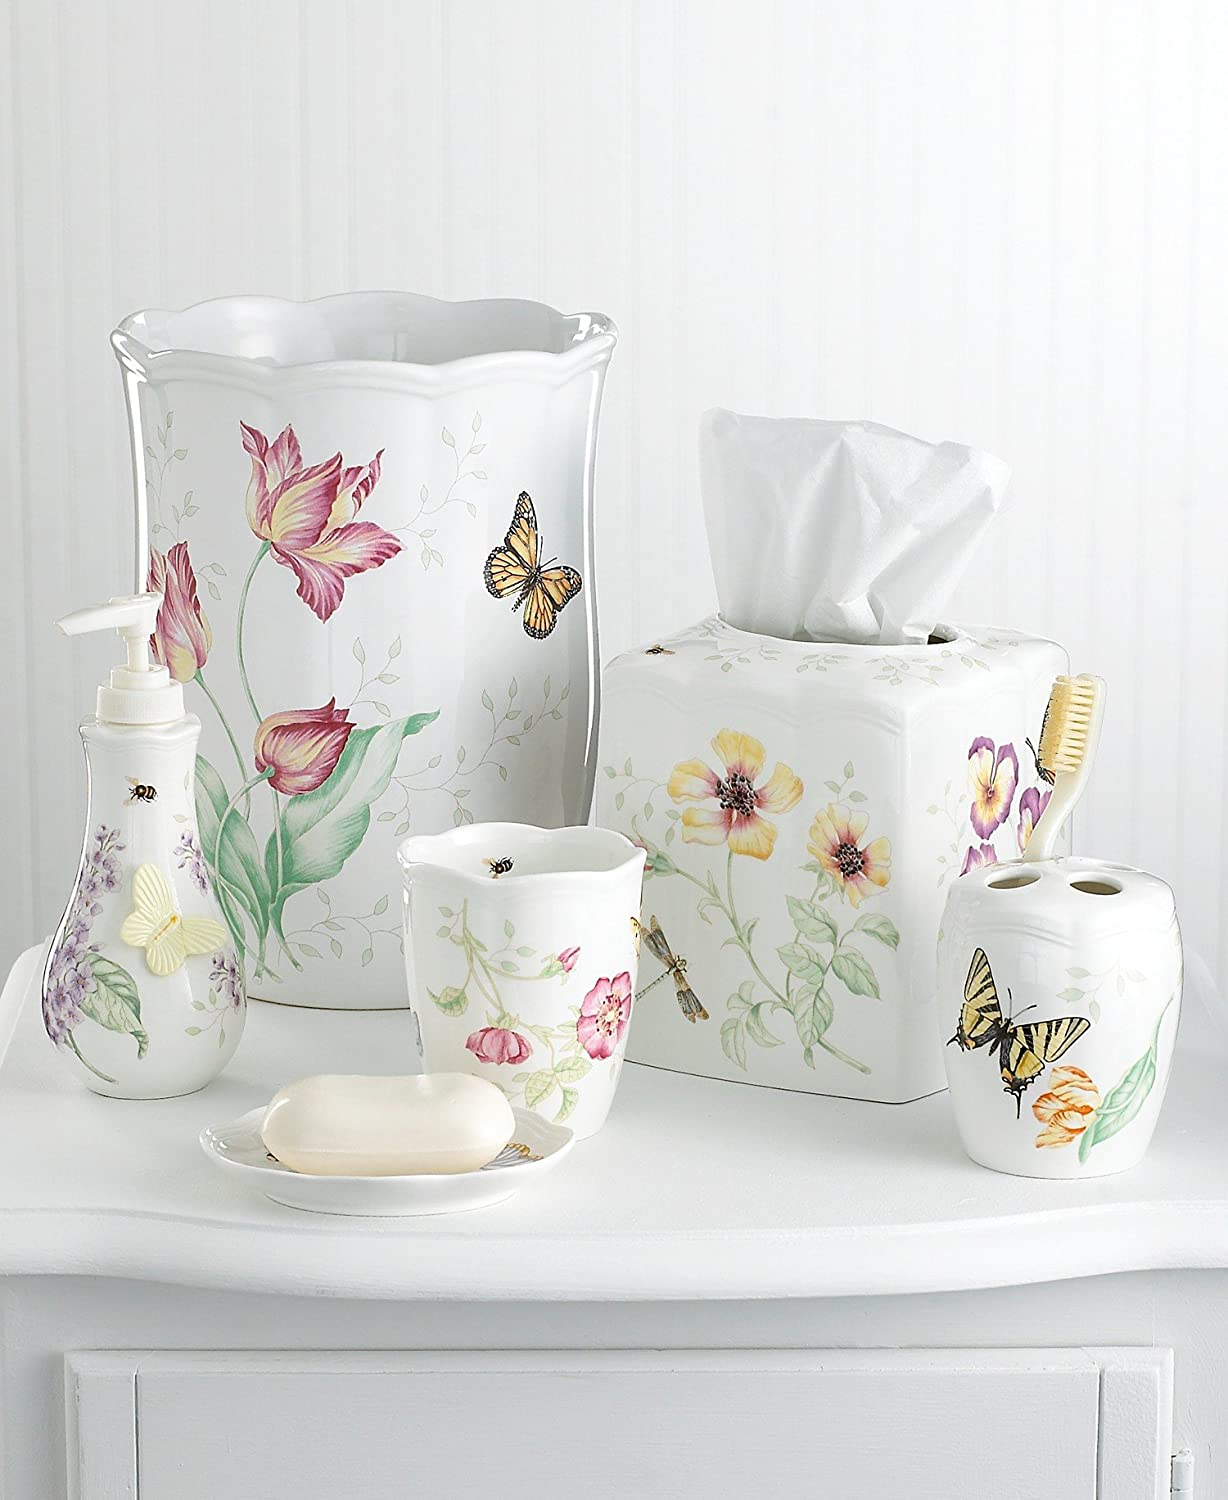 Amazon.com: Lenox Butterfly Meadow Waste Basket: Waste Bins: Kitchen U0026  Dining